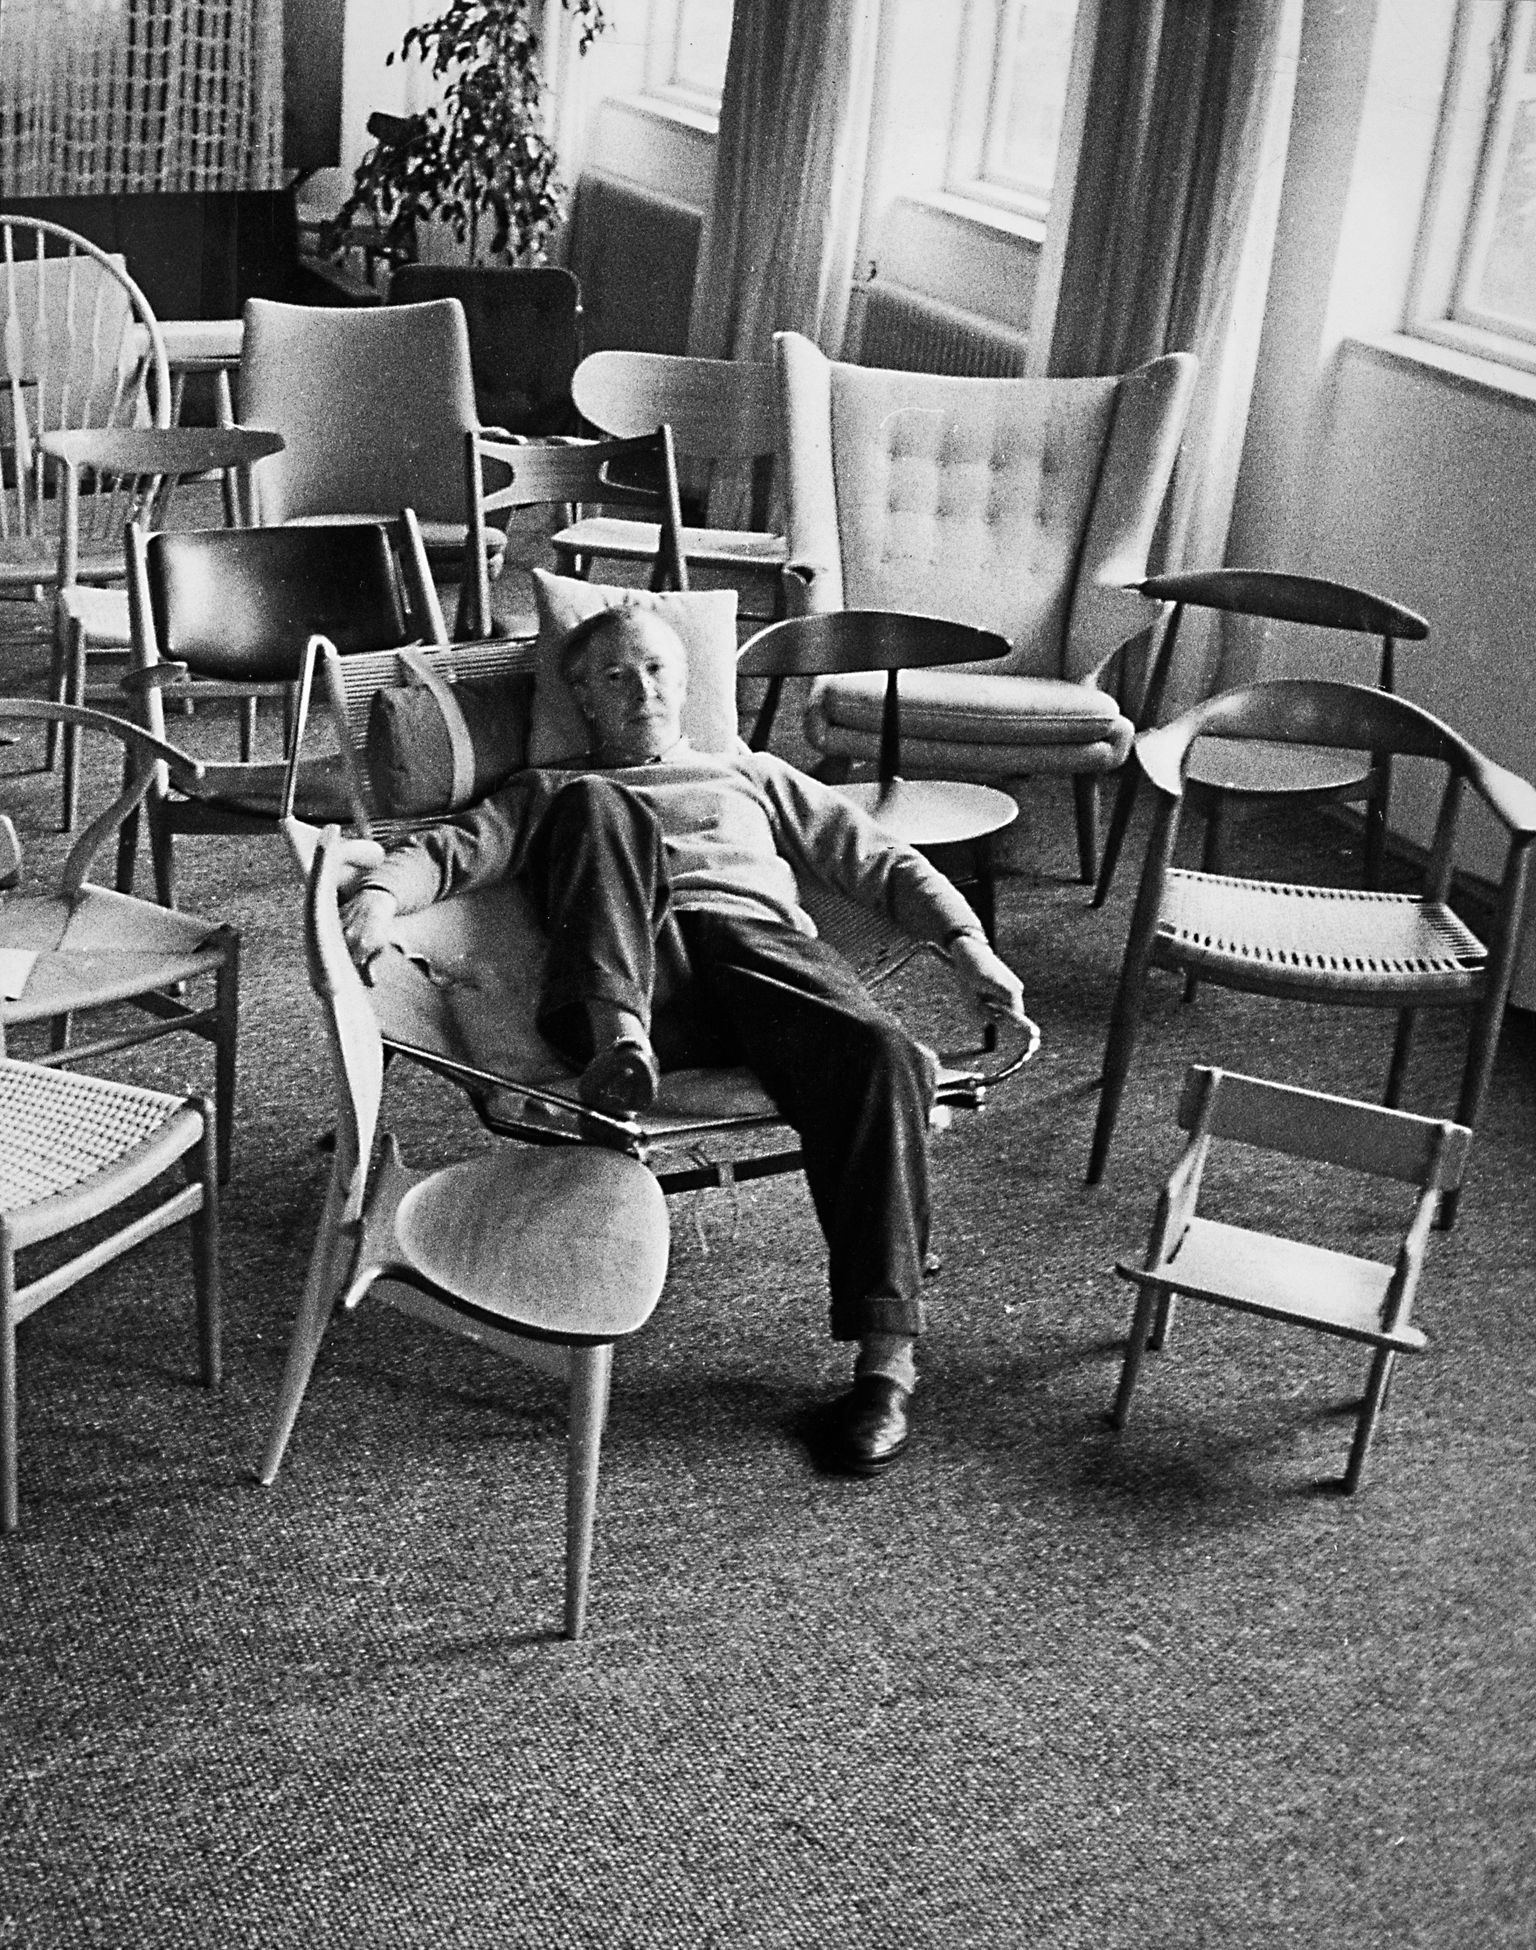 HANS J WEGNER with The Round Chair from 1949 Mid Century mostly Creators Pinterest